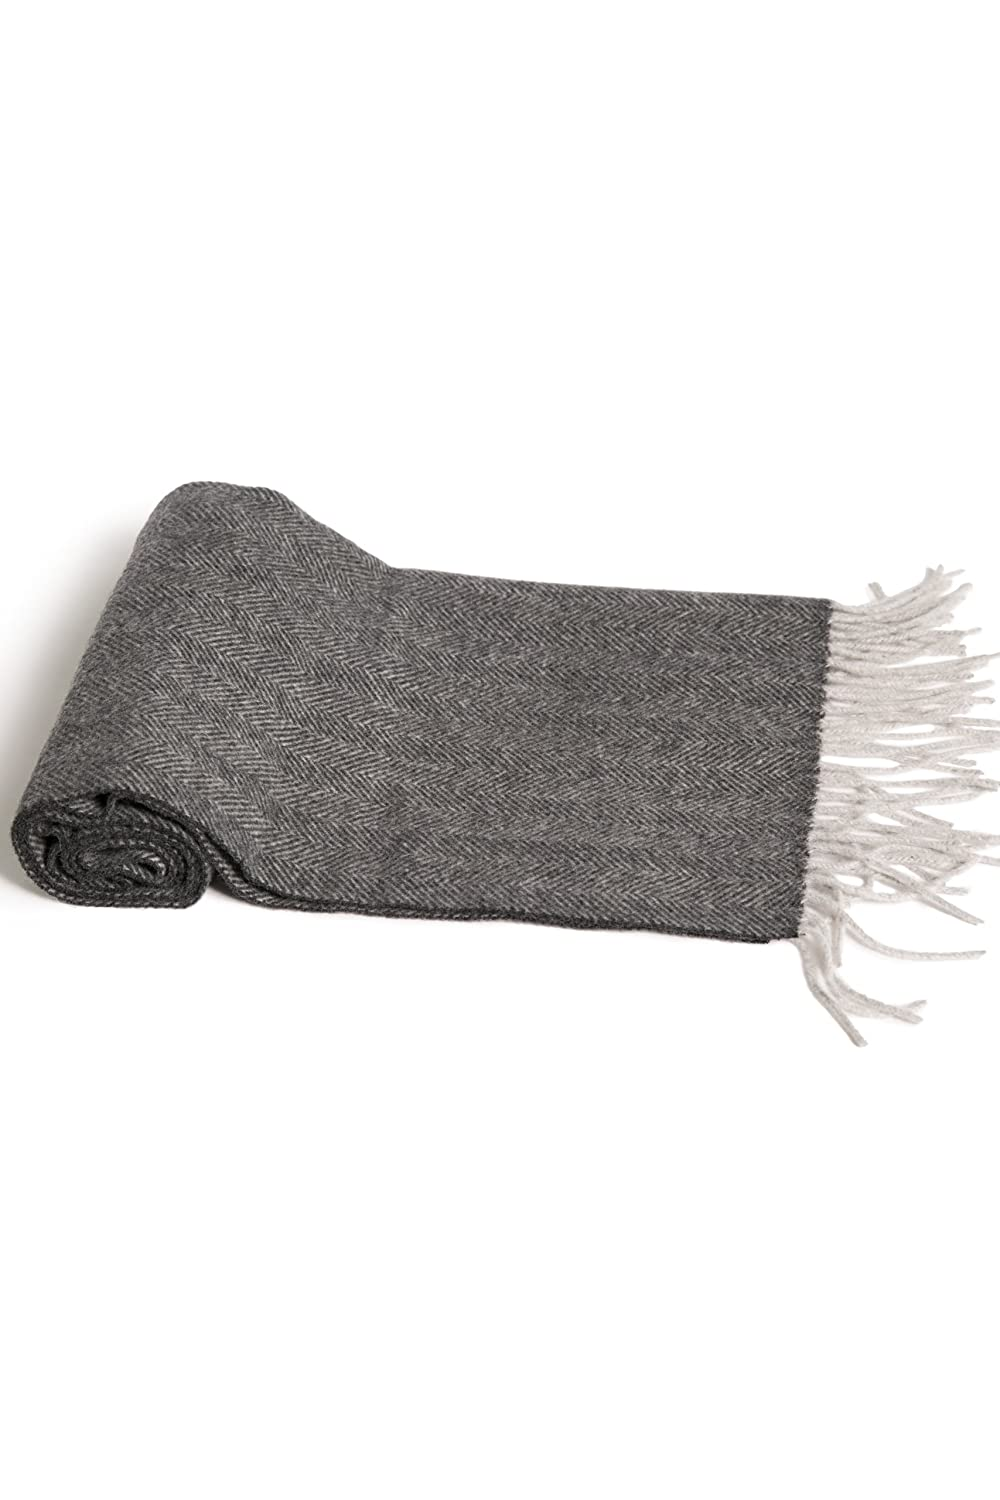 Fishers Finery Men's 100% Pure Cashmere Winter Scarf; 2-Ply Dehaired Warm and Comfortable (Black) MA-03-SF1-506-BLK-U